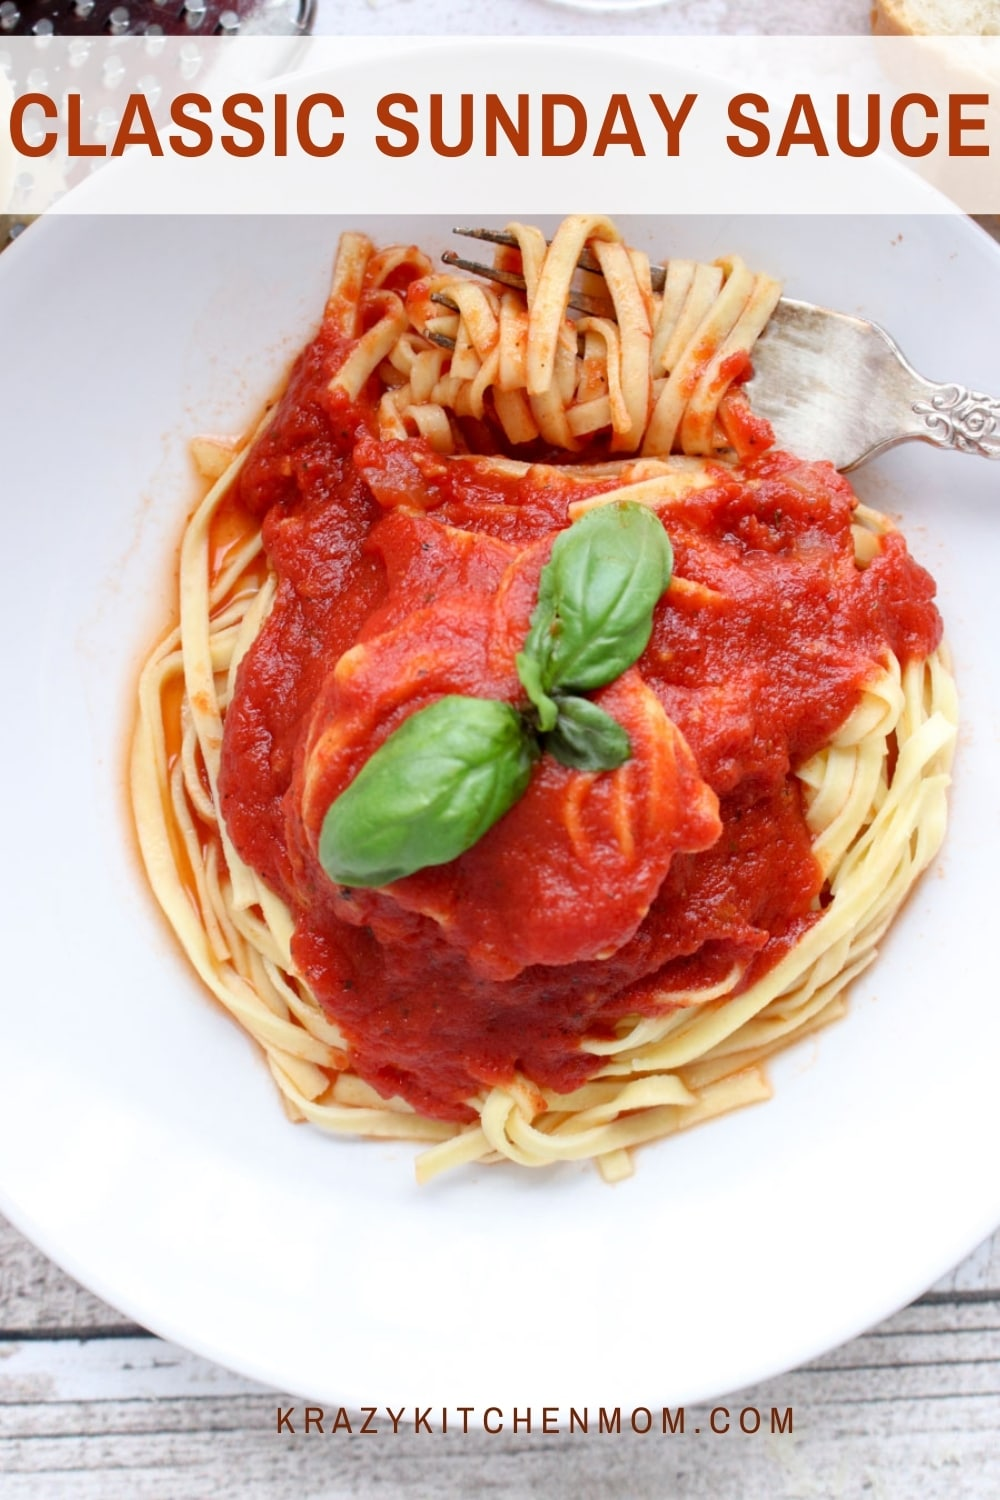 The secret to a perfect Sunday Sauce is to cook it low and slow for several hours. No rush and little fuss. It's worth every minute you wait. via @krazykitchenmom